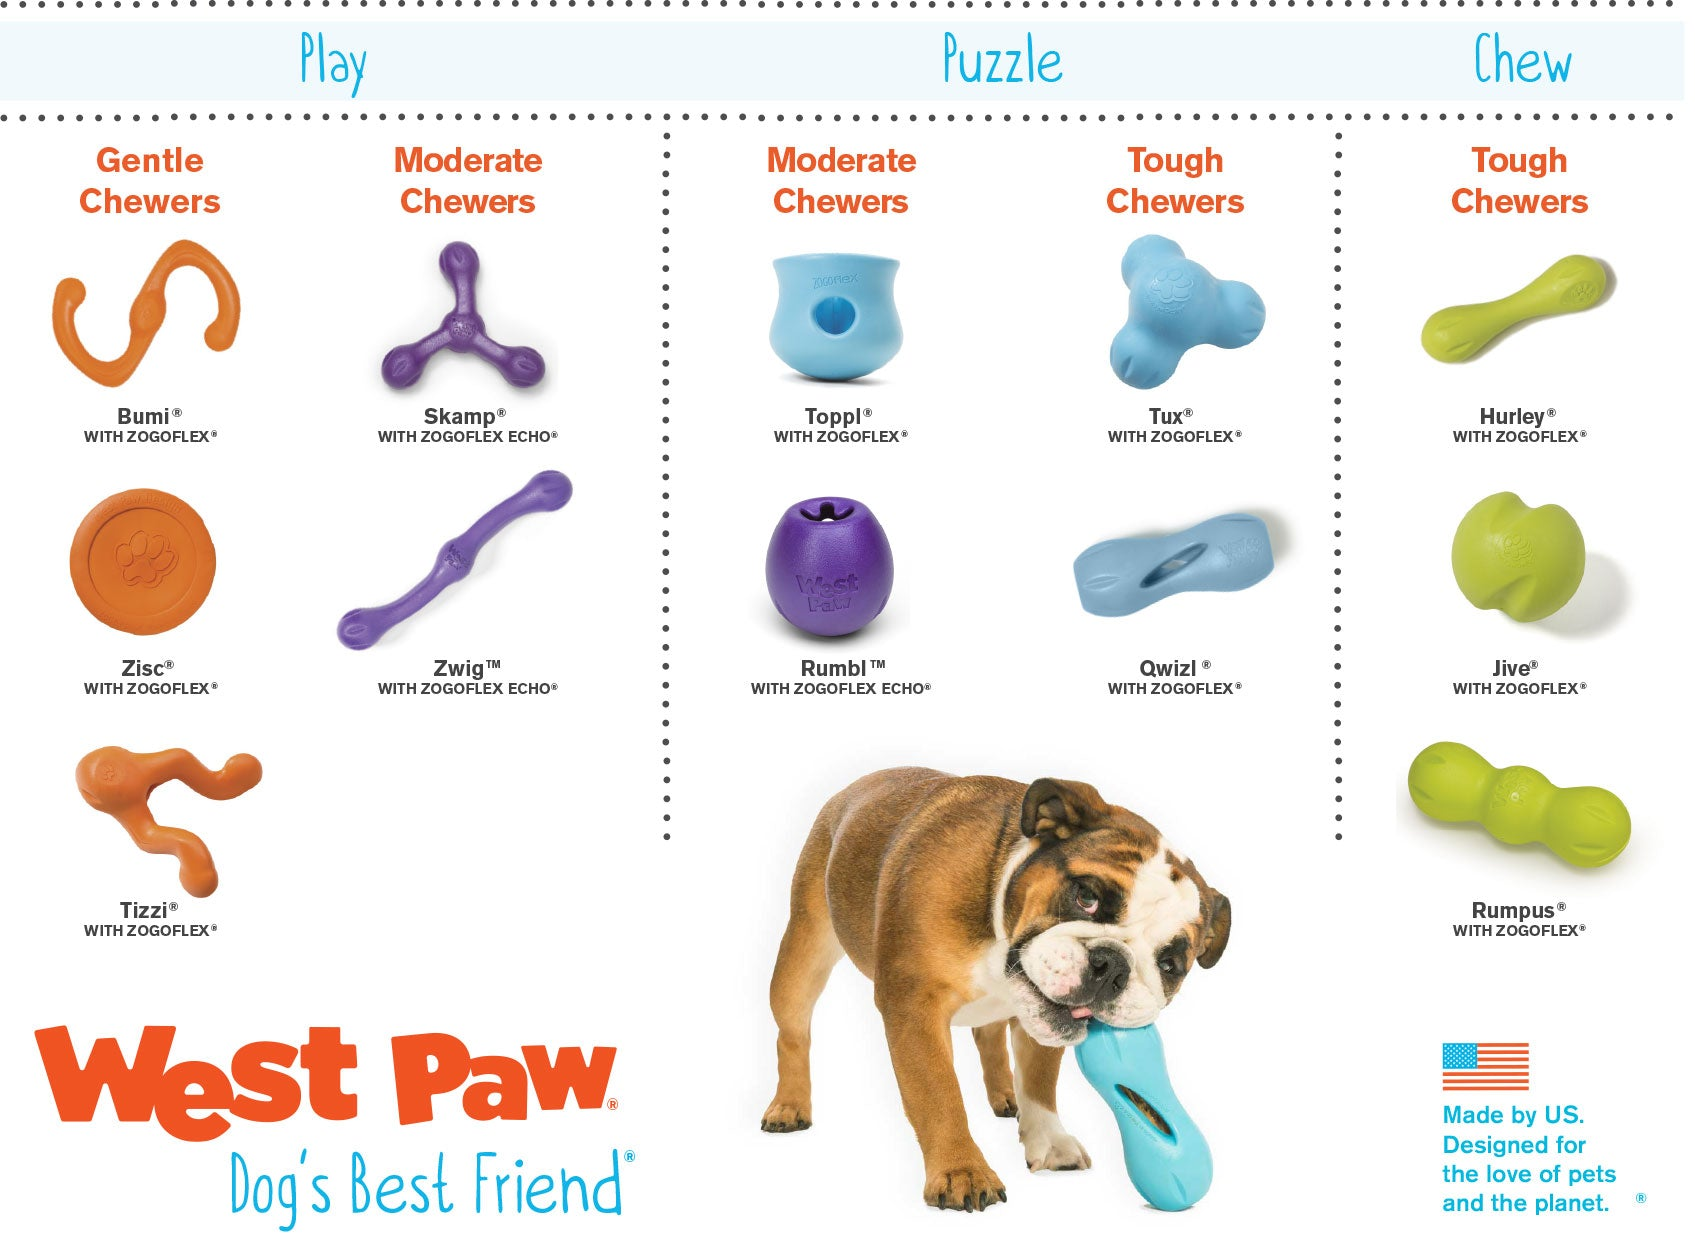 How to choose a West Paw toy for your dog